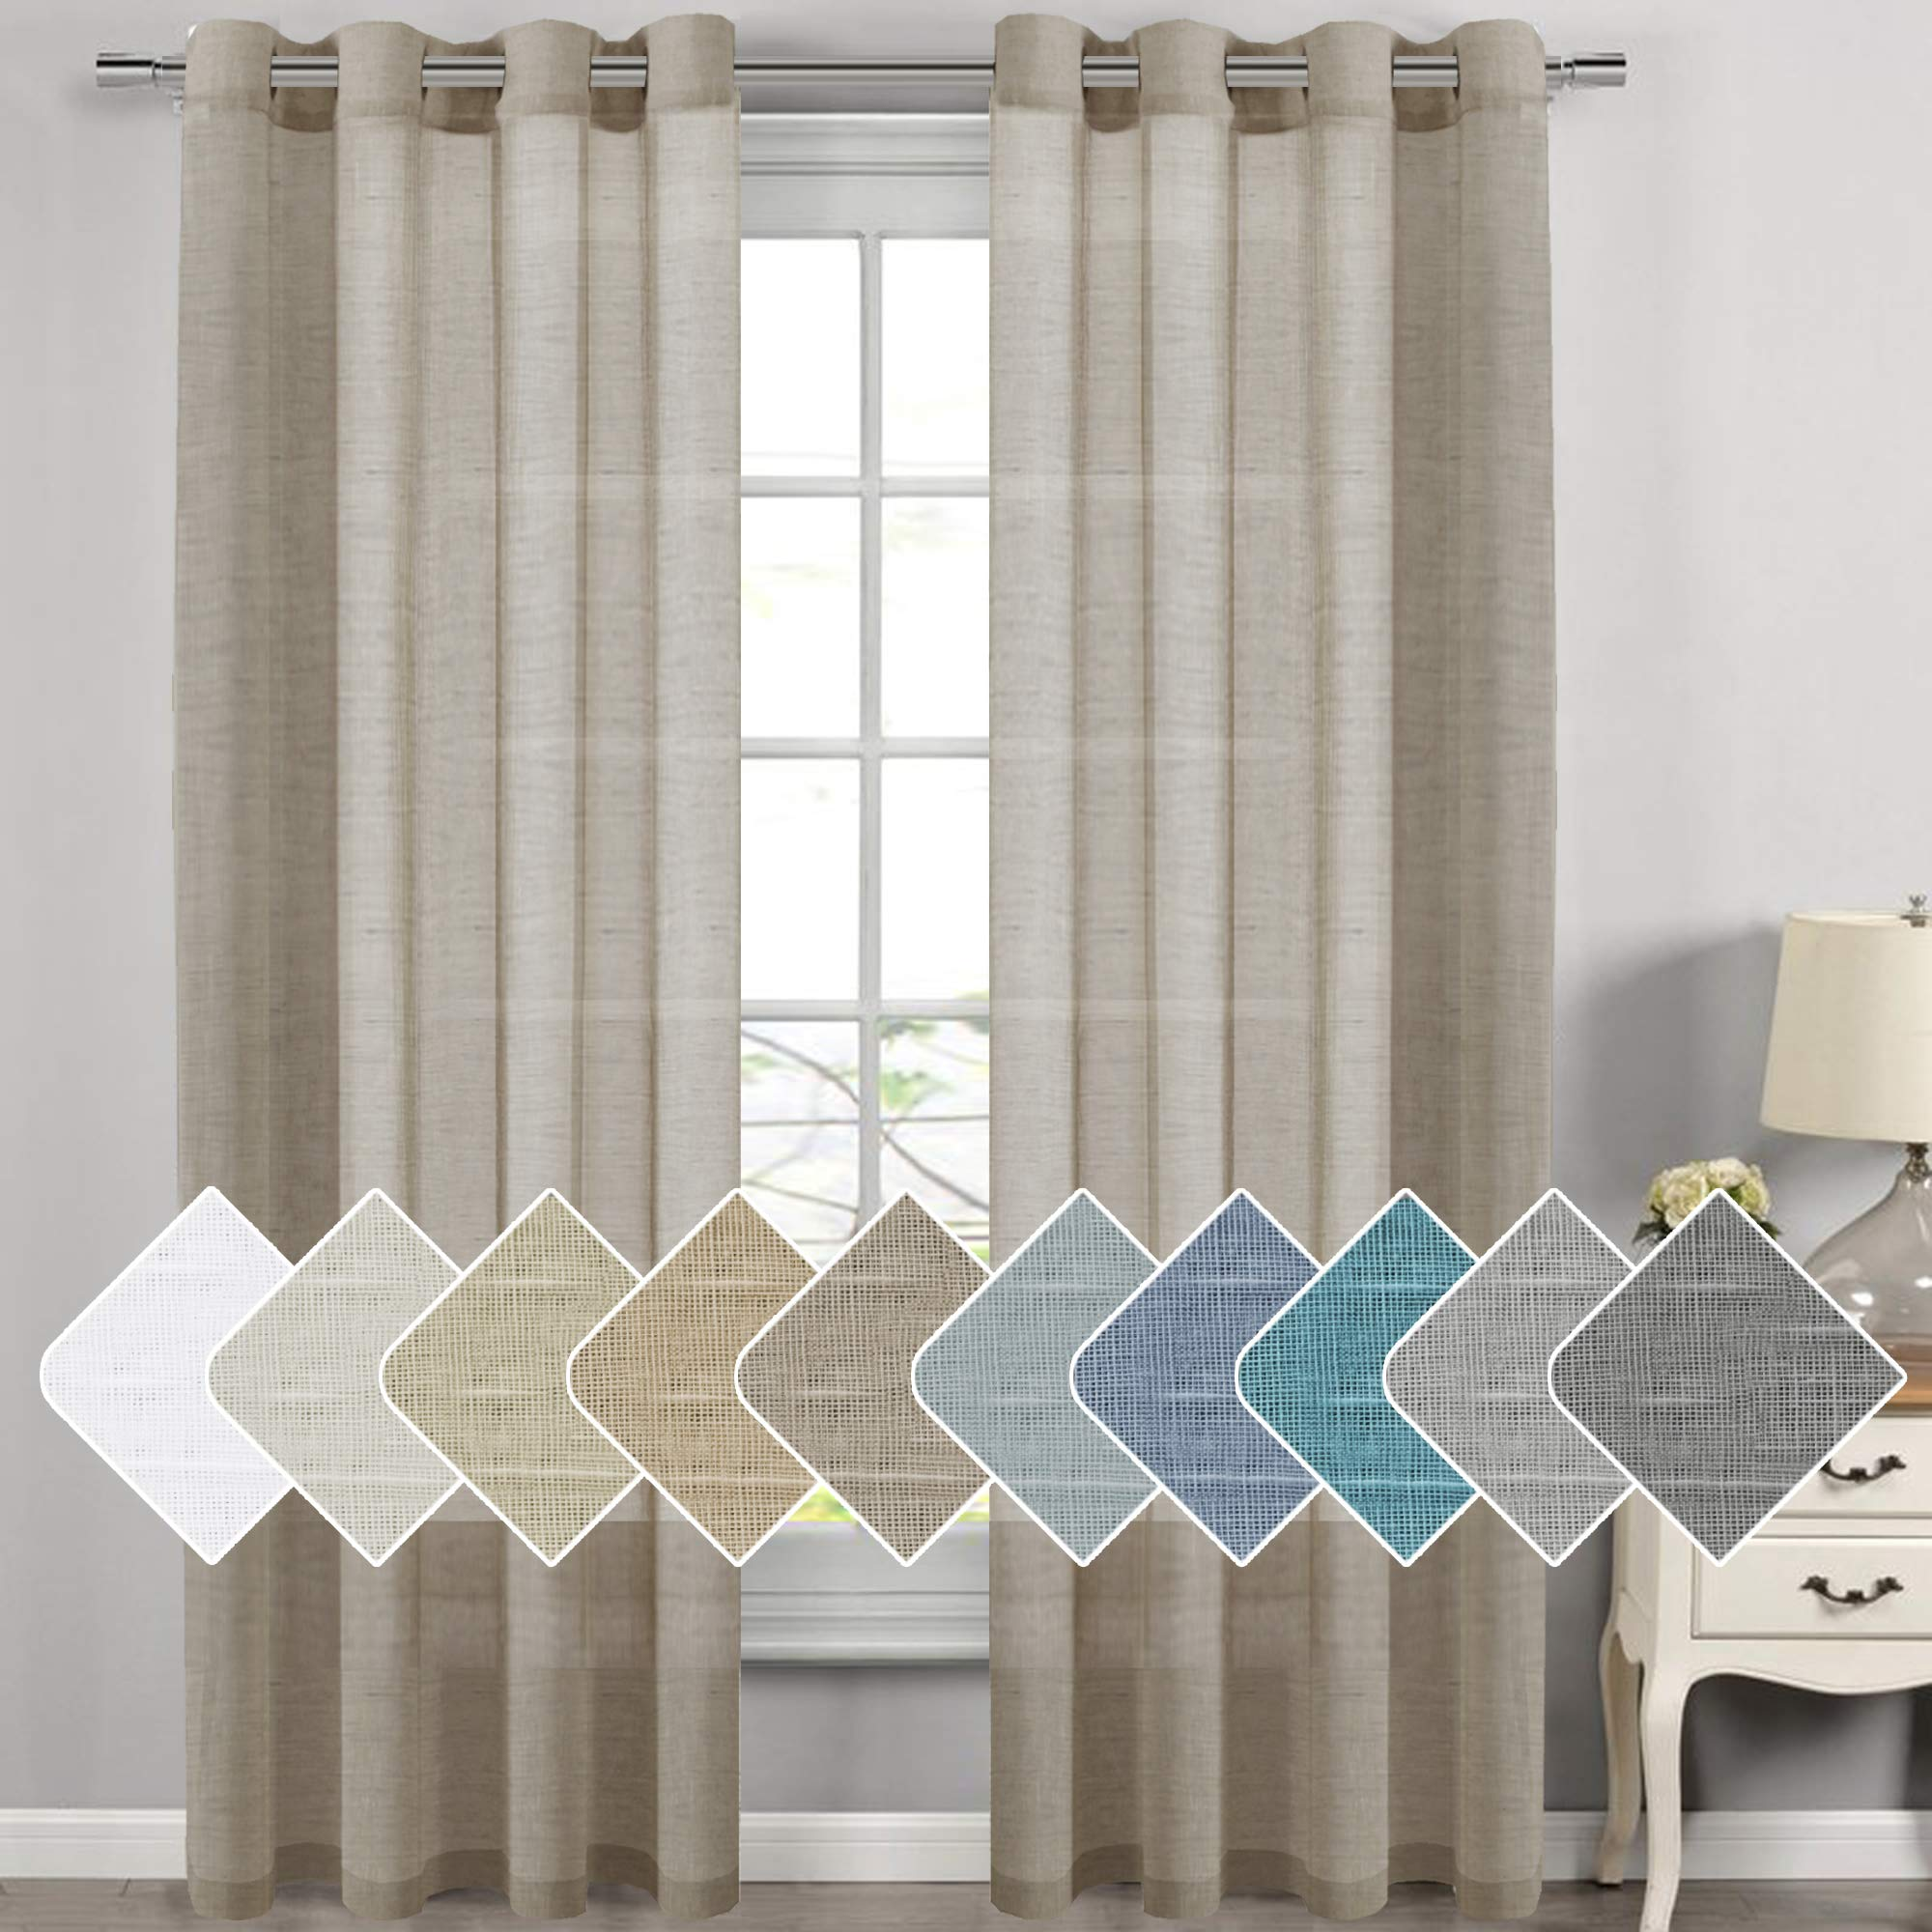 H.VERSAILTEX Linen Sheer Curtains - 2 Panels - Nickel Grommet Linen Curtains for Dining Room/Sliding Glass Door Extra Long Linen Curtains Sheer (52 inch by 108 inch Length,Taupe) by H.VERSAILTEX